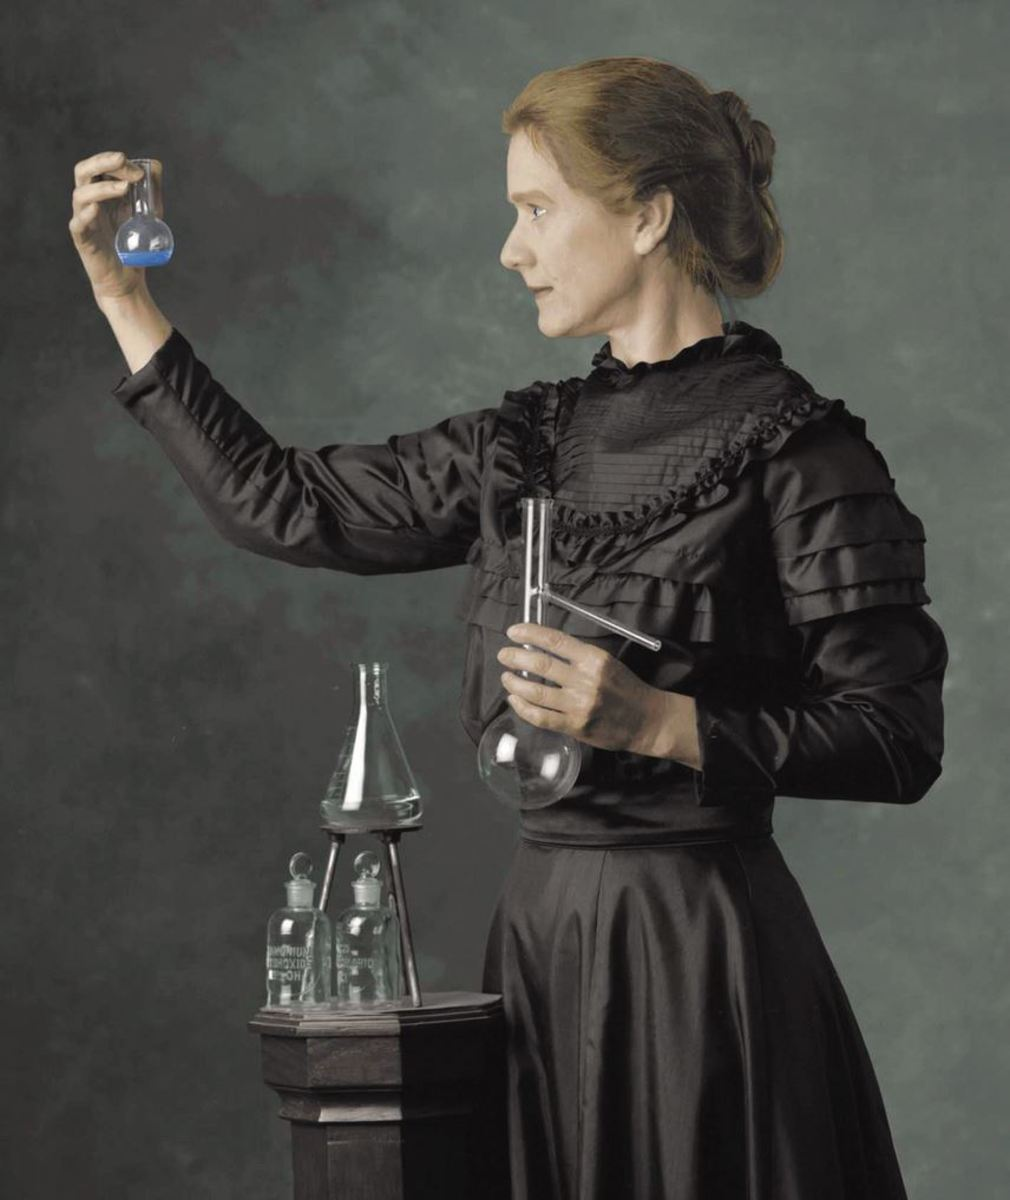 Madame Curie forced a re-consideration of physics and chemistry by the isolation of radium. She won multiple awards including a couple Nobel Prizes.